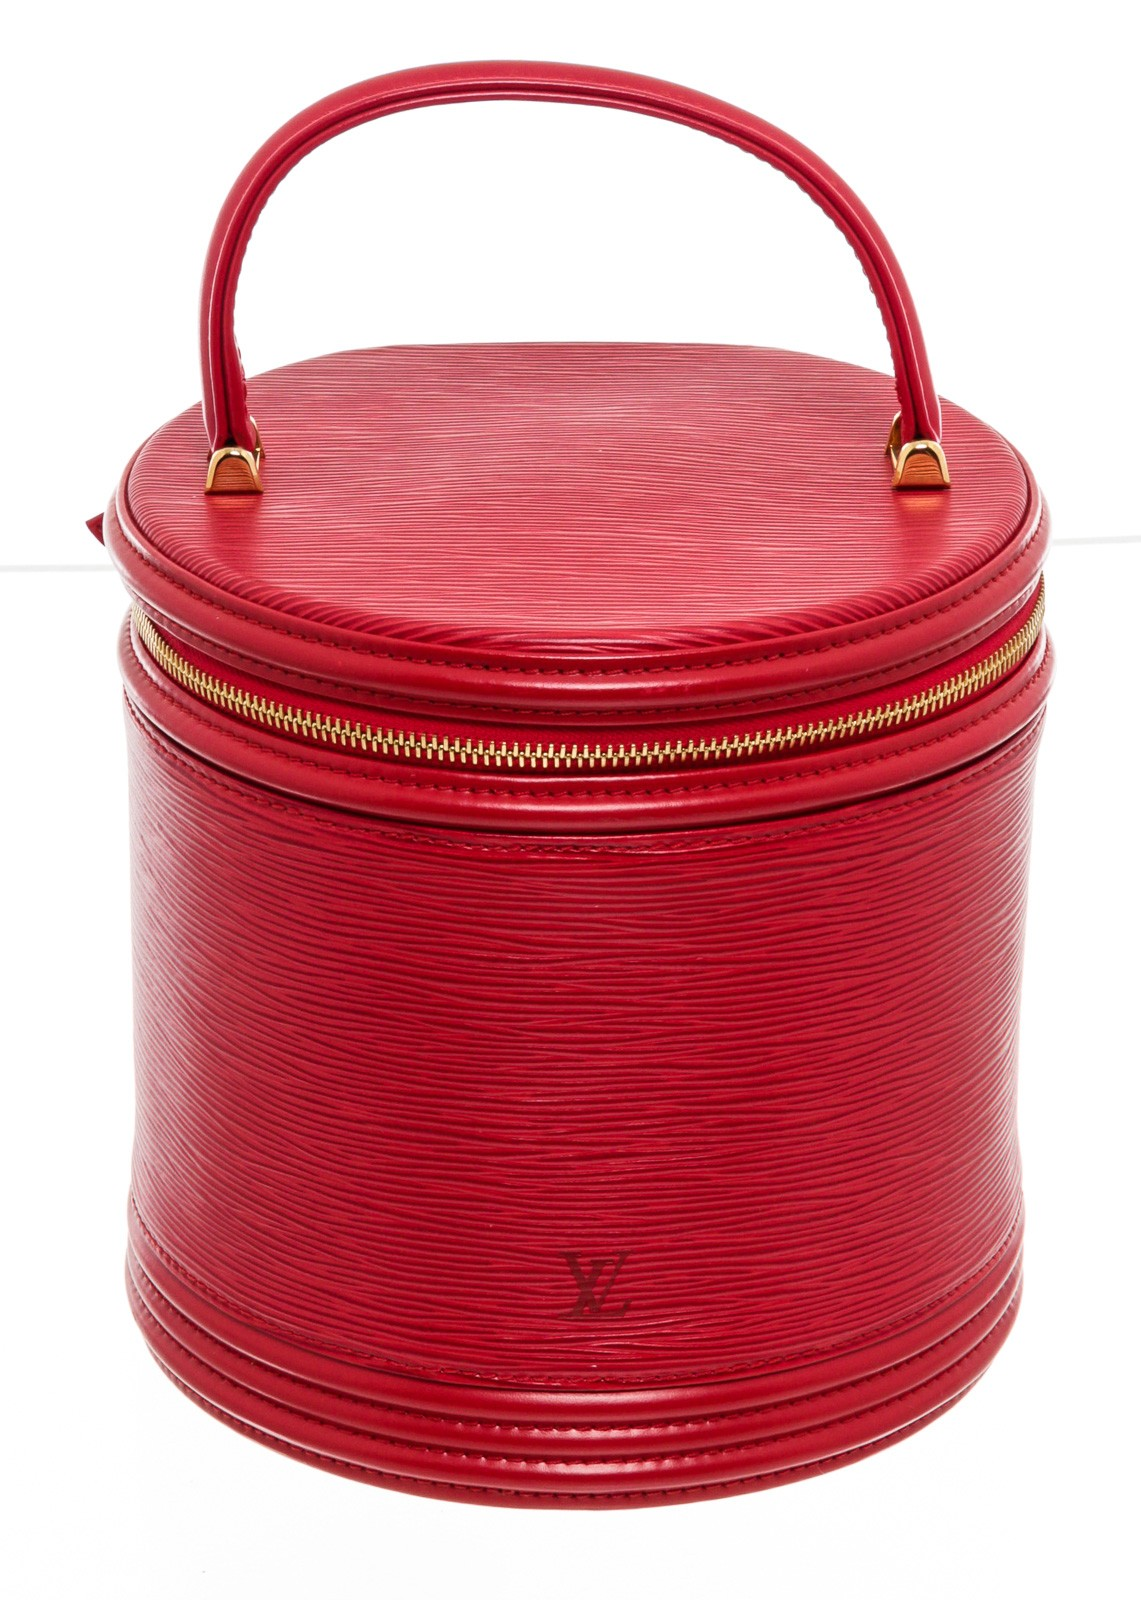 Louis Vuitton Epi Cannes Marque Luxury.jpg